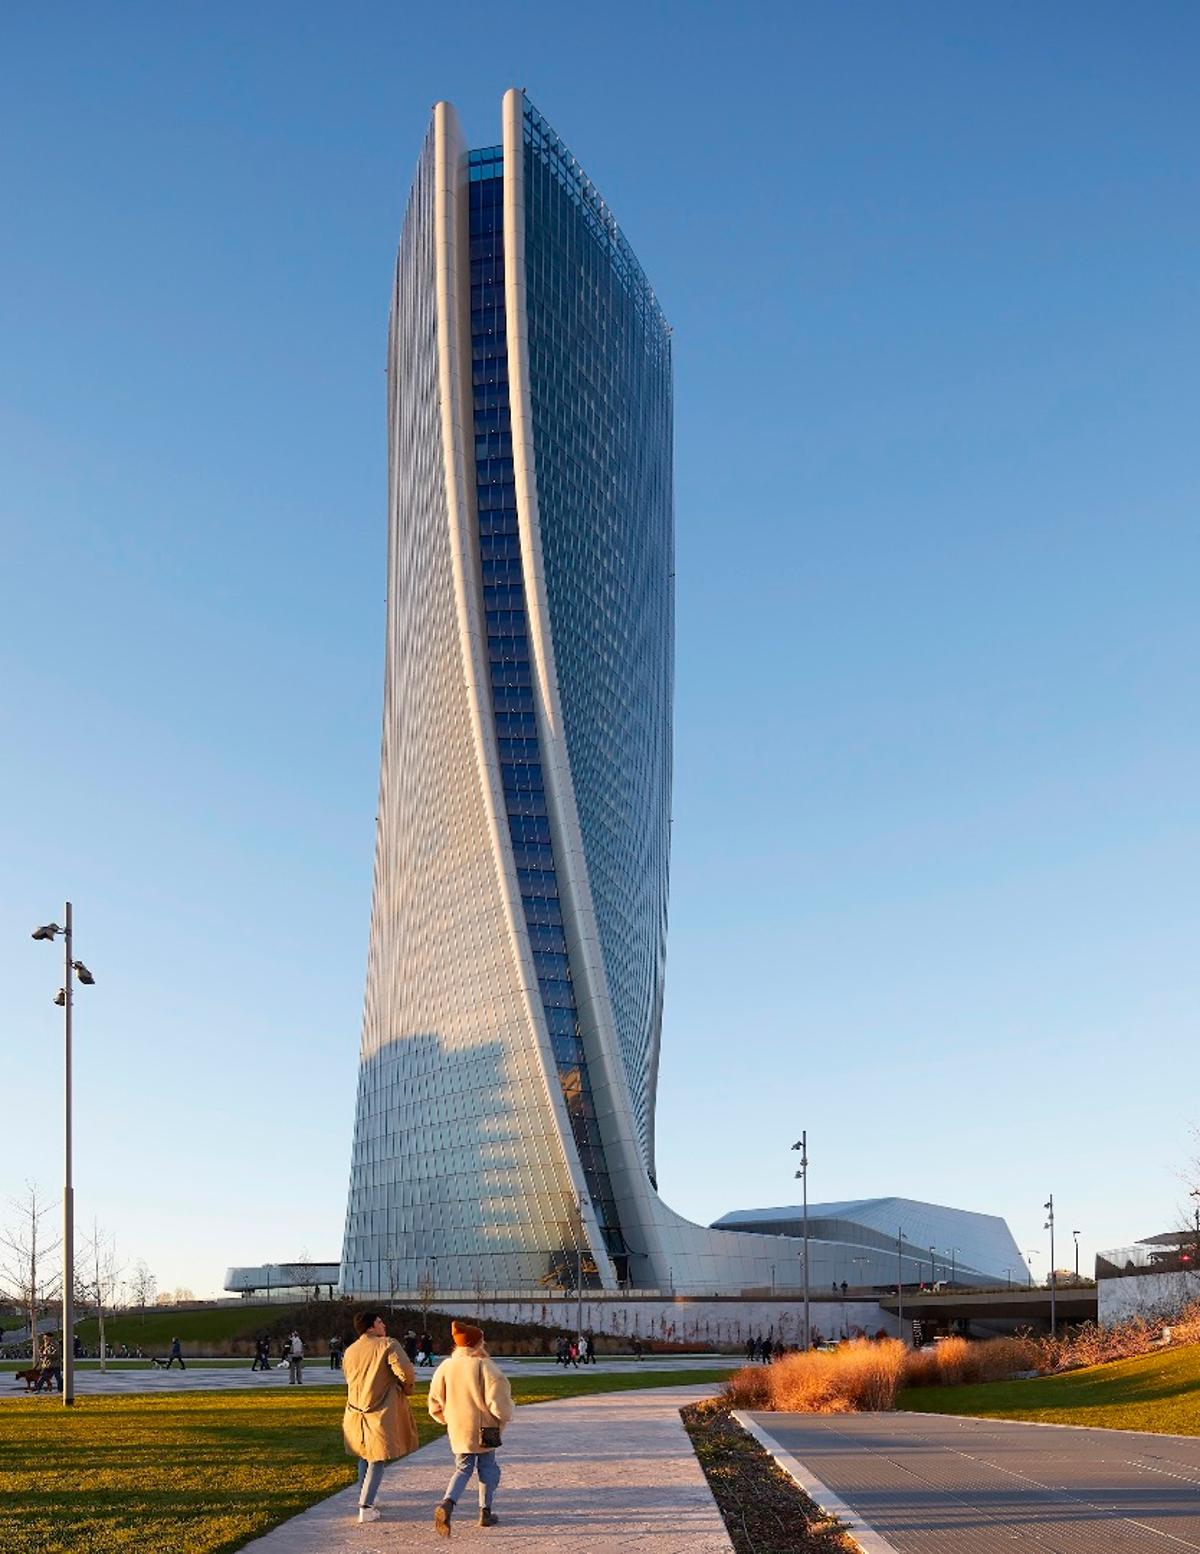 The Generali Tower reaches a height of 170 m (557 ft)